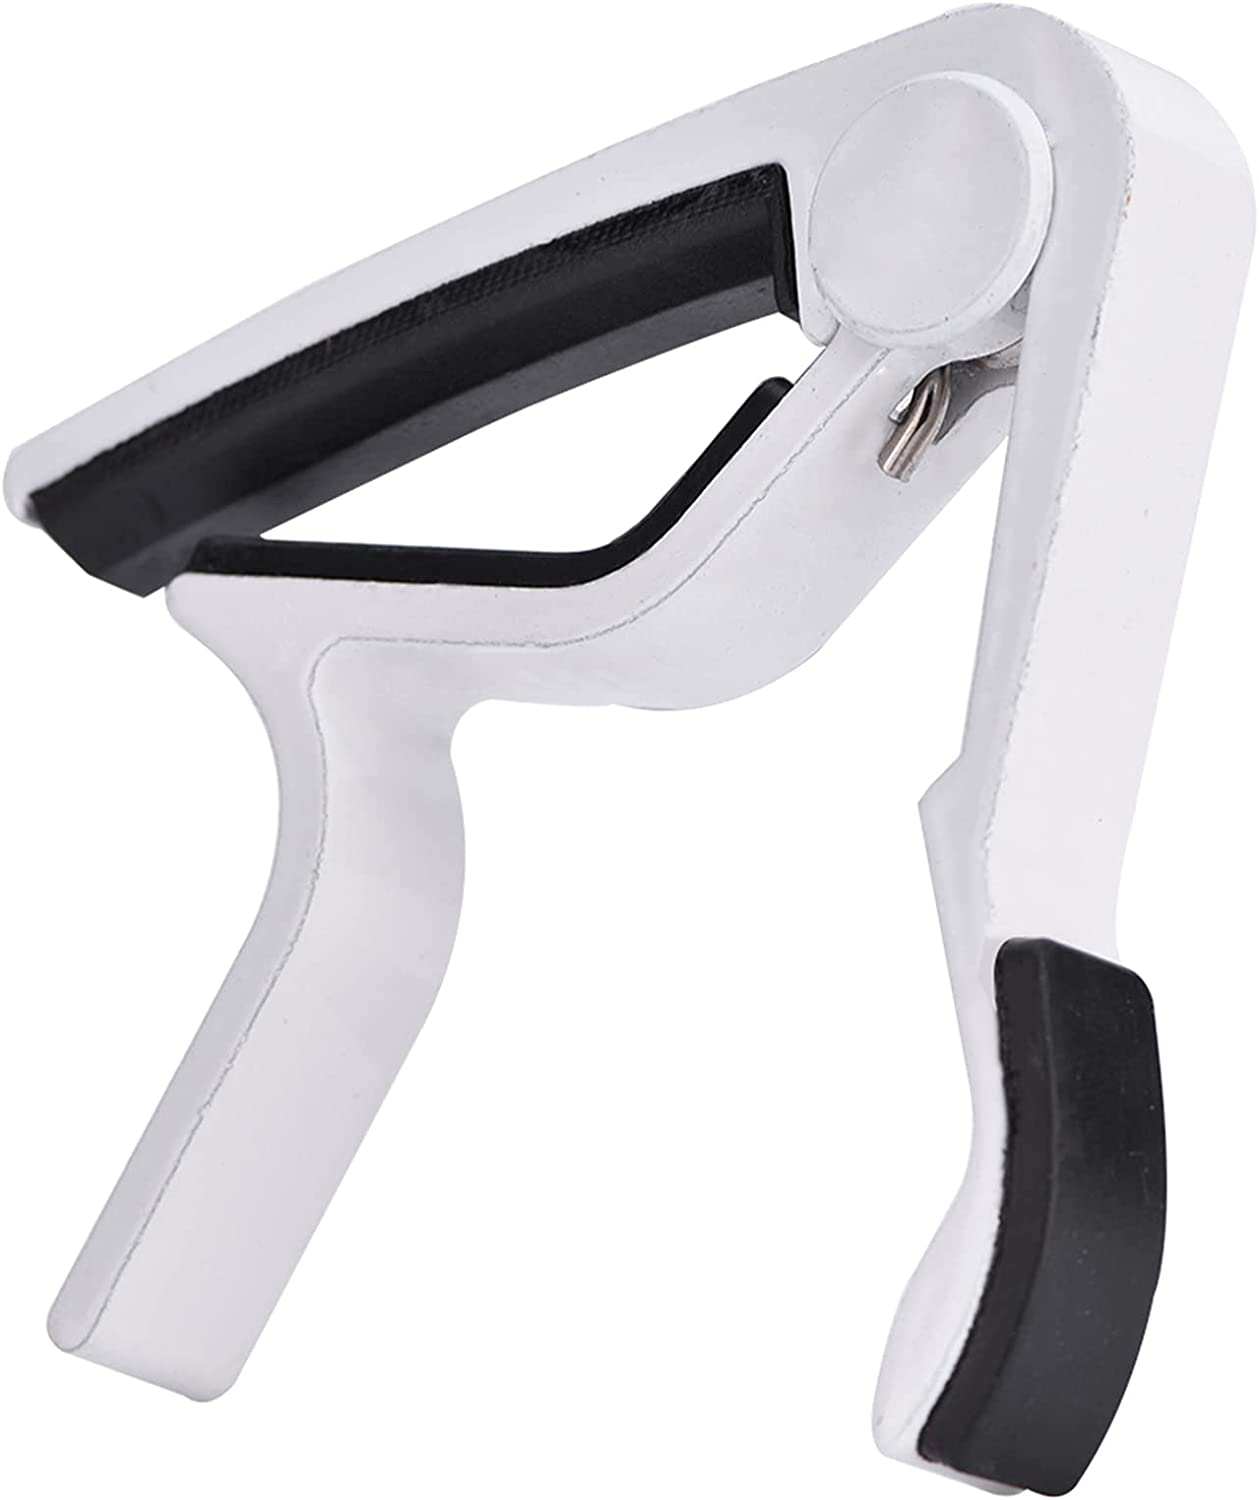 DAUERHAFT Folk Capo with Quick Release Change Tuner Fo Ranking TOP5 for Super beauty product restock quality top